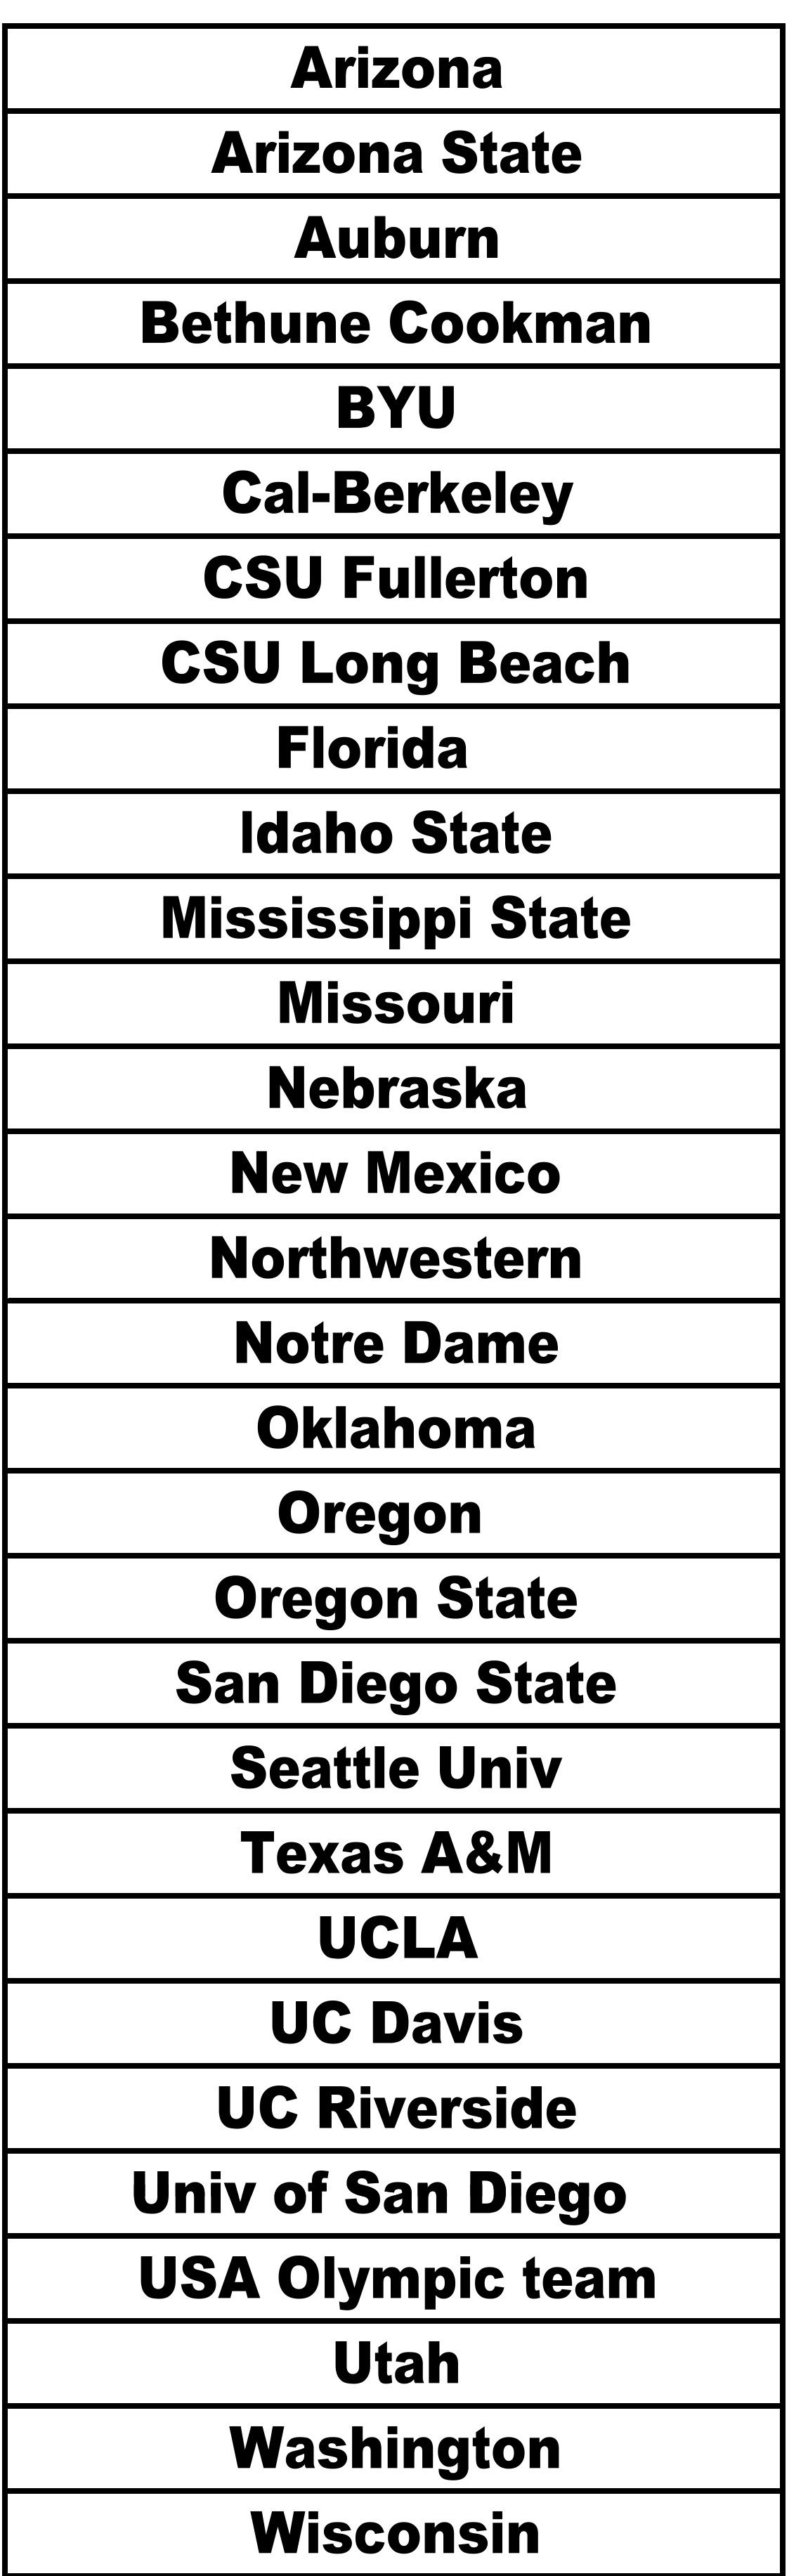 graphic relating to Printable Olympic Tv Schedule referred to as Mary Nutter Collegiate Clic